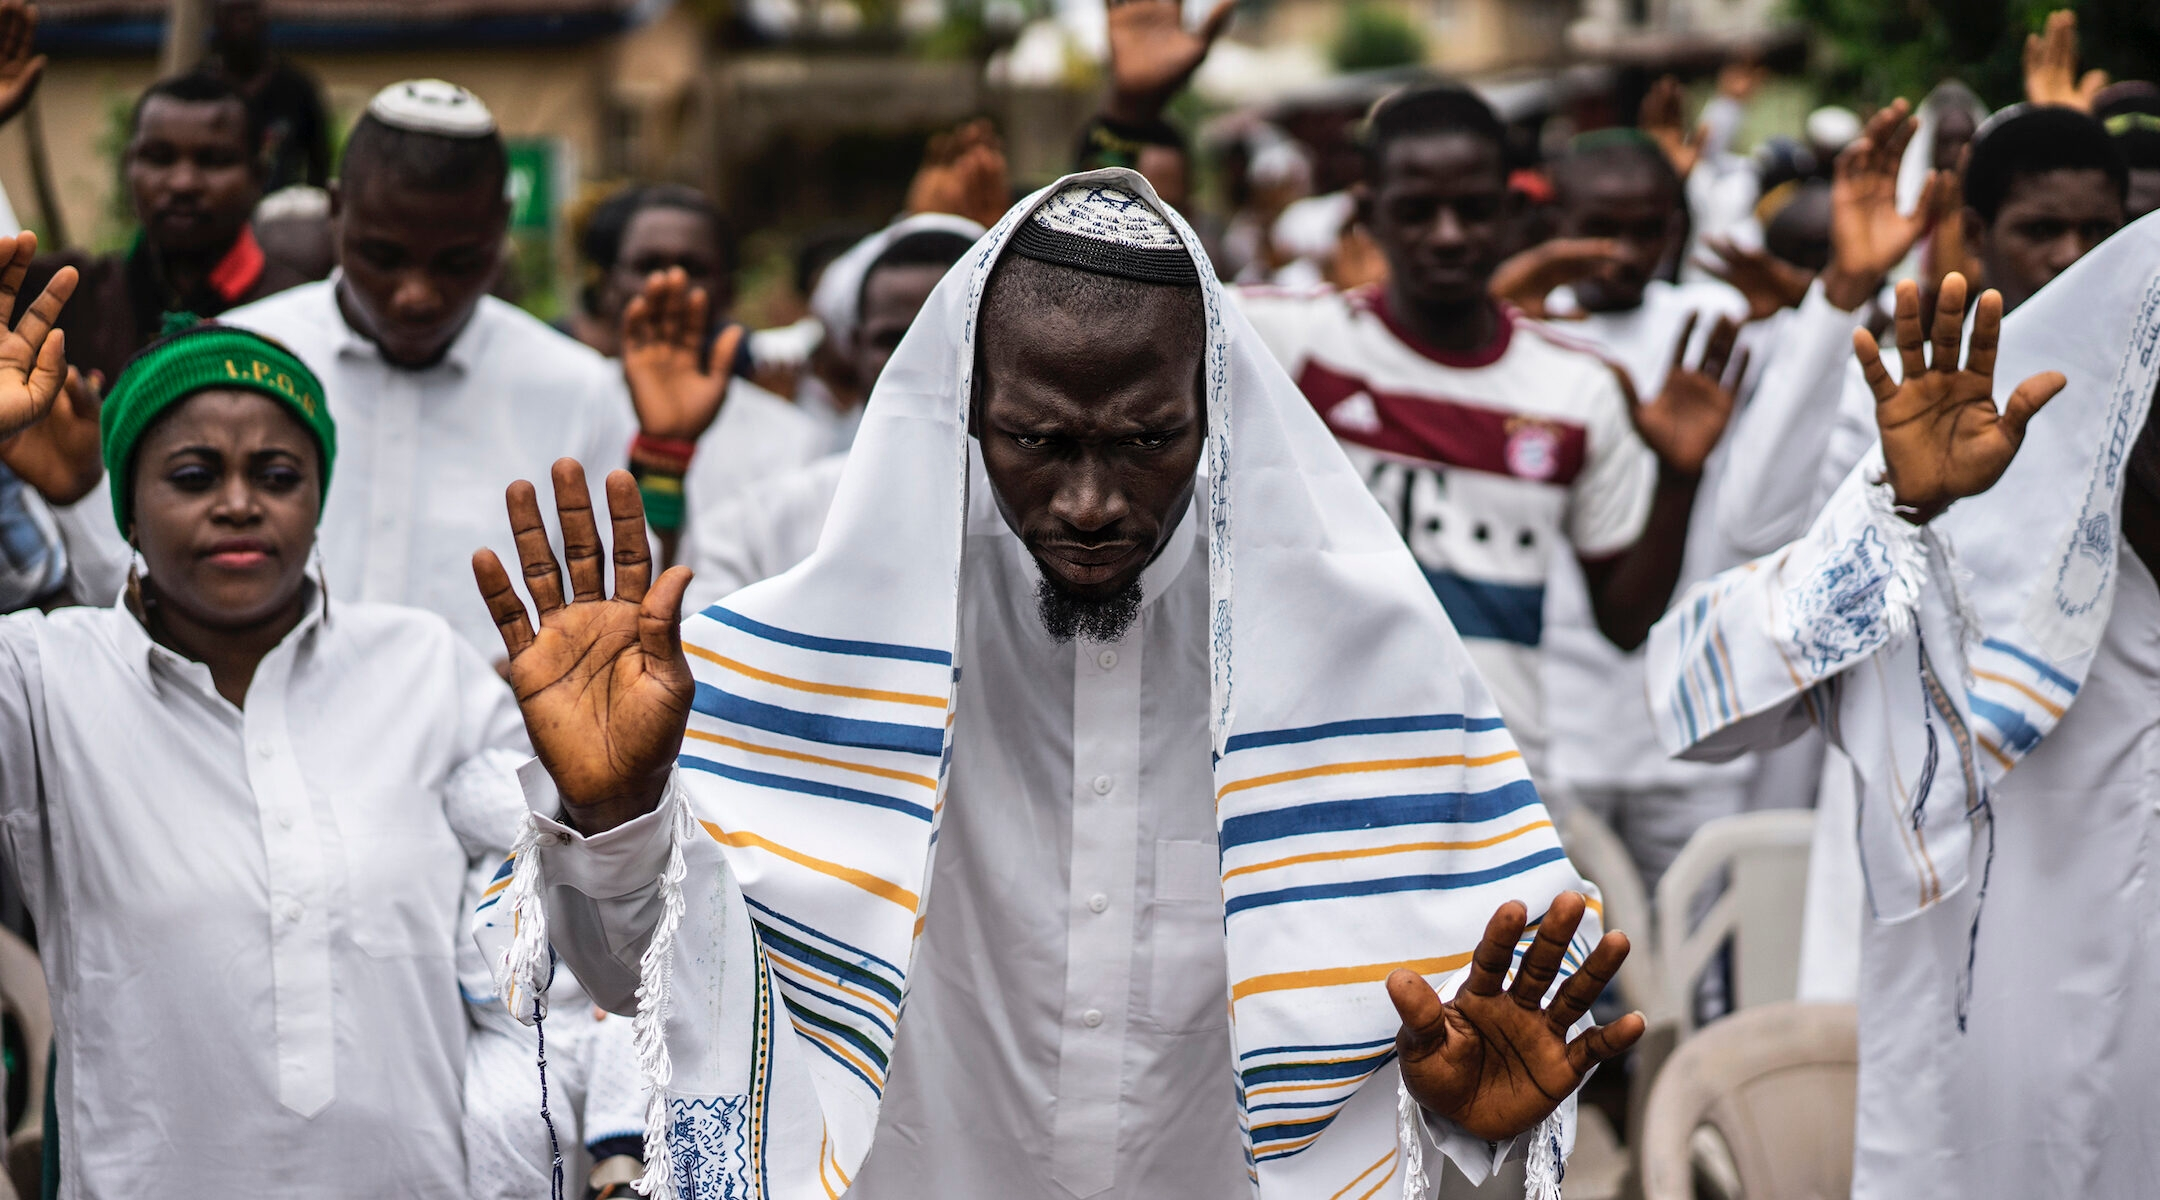 Nigerian worshippers celebrate Shabbat in 2017. The country's small Jewish community has become caught up in a separatist movement led by a Jewish activist. (Marco Longari/AFP via Getty Images)